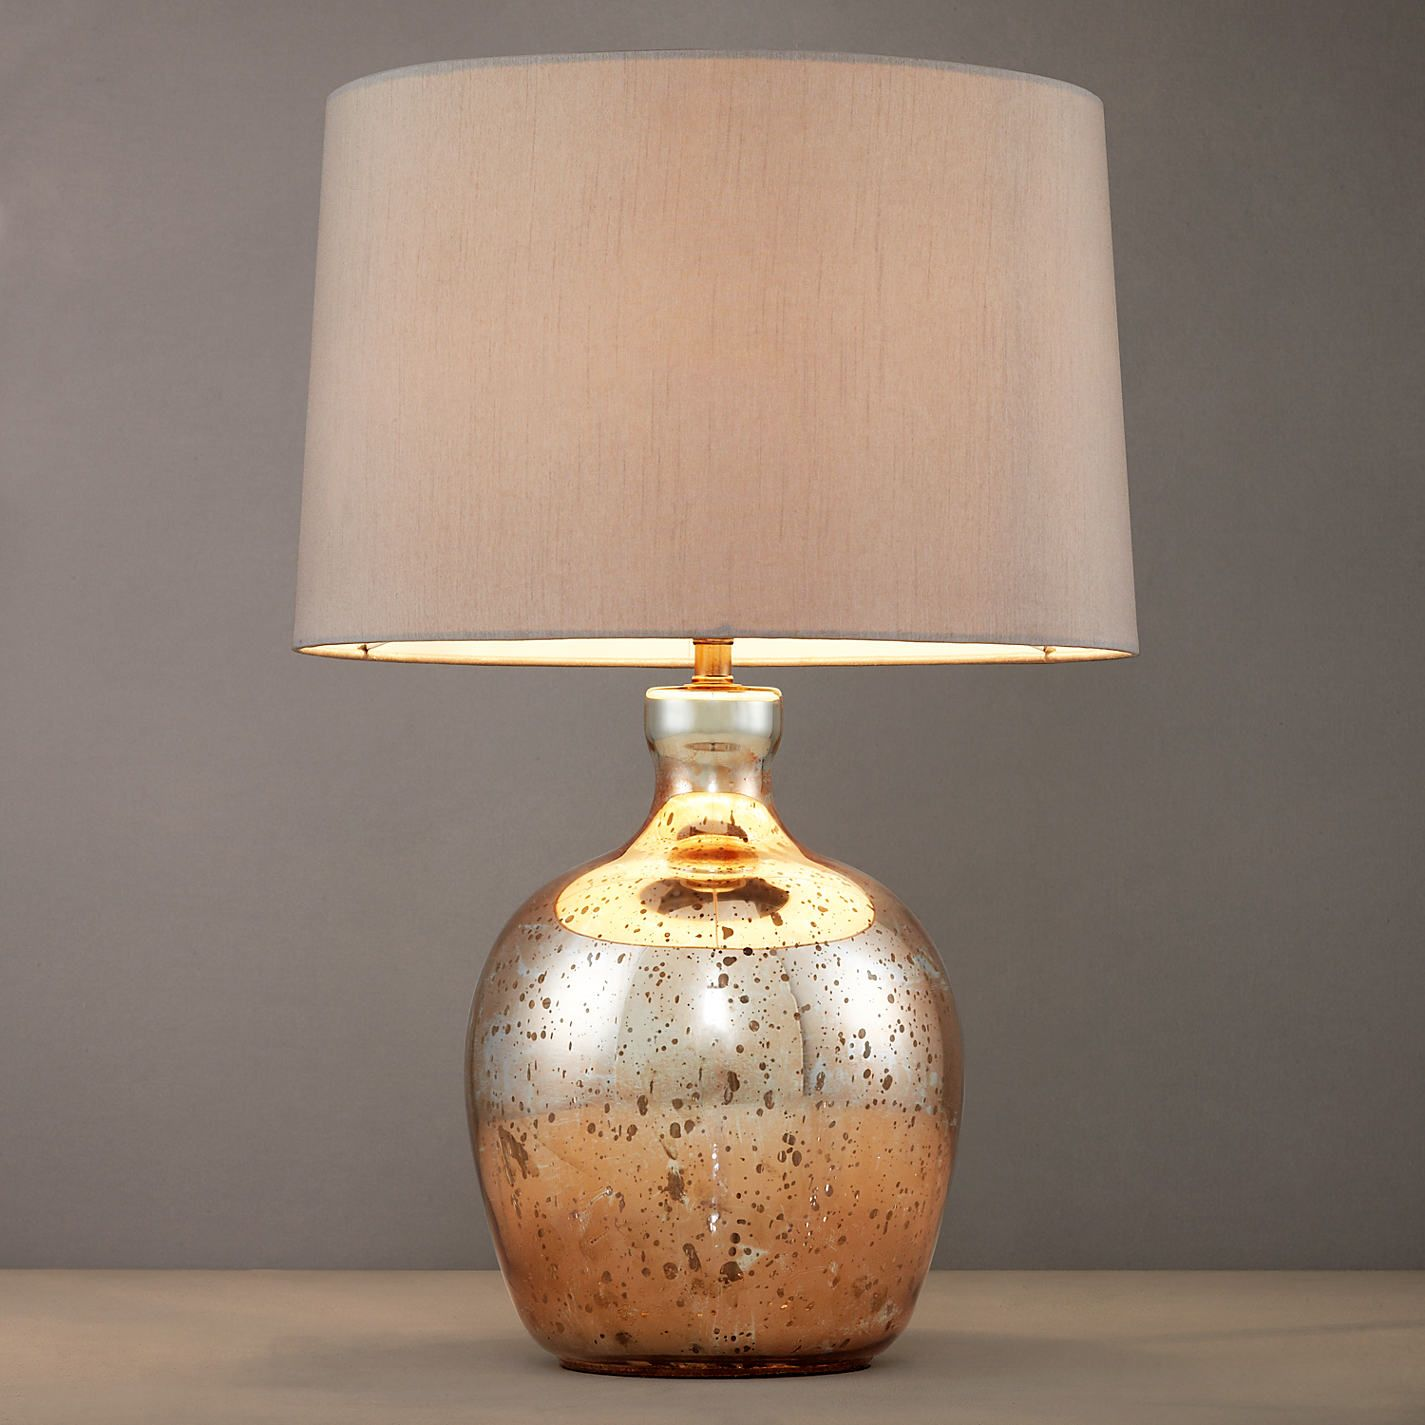 John lewis tabitha copper table lamp john lewis ranges and loft buy john lewis tabitha copper table lamp from our view all table lamps range at john lewis free delivery on orders over 50 mozeypictures Gallery